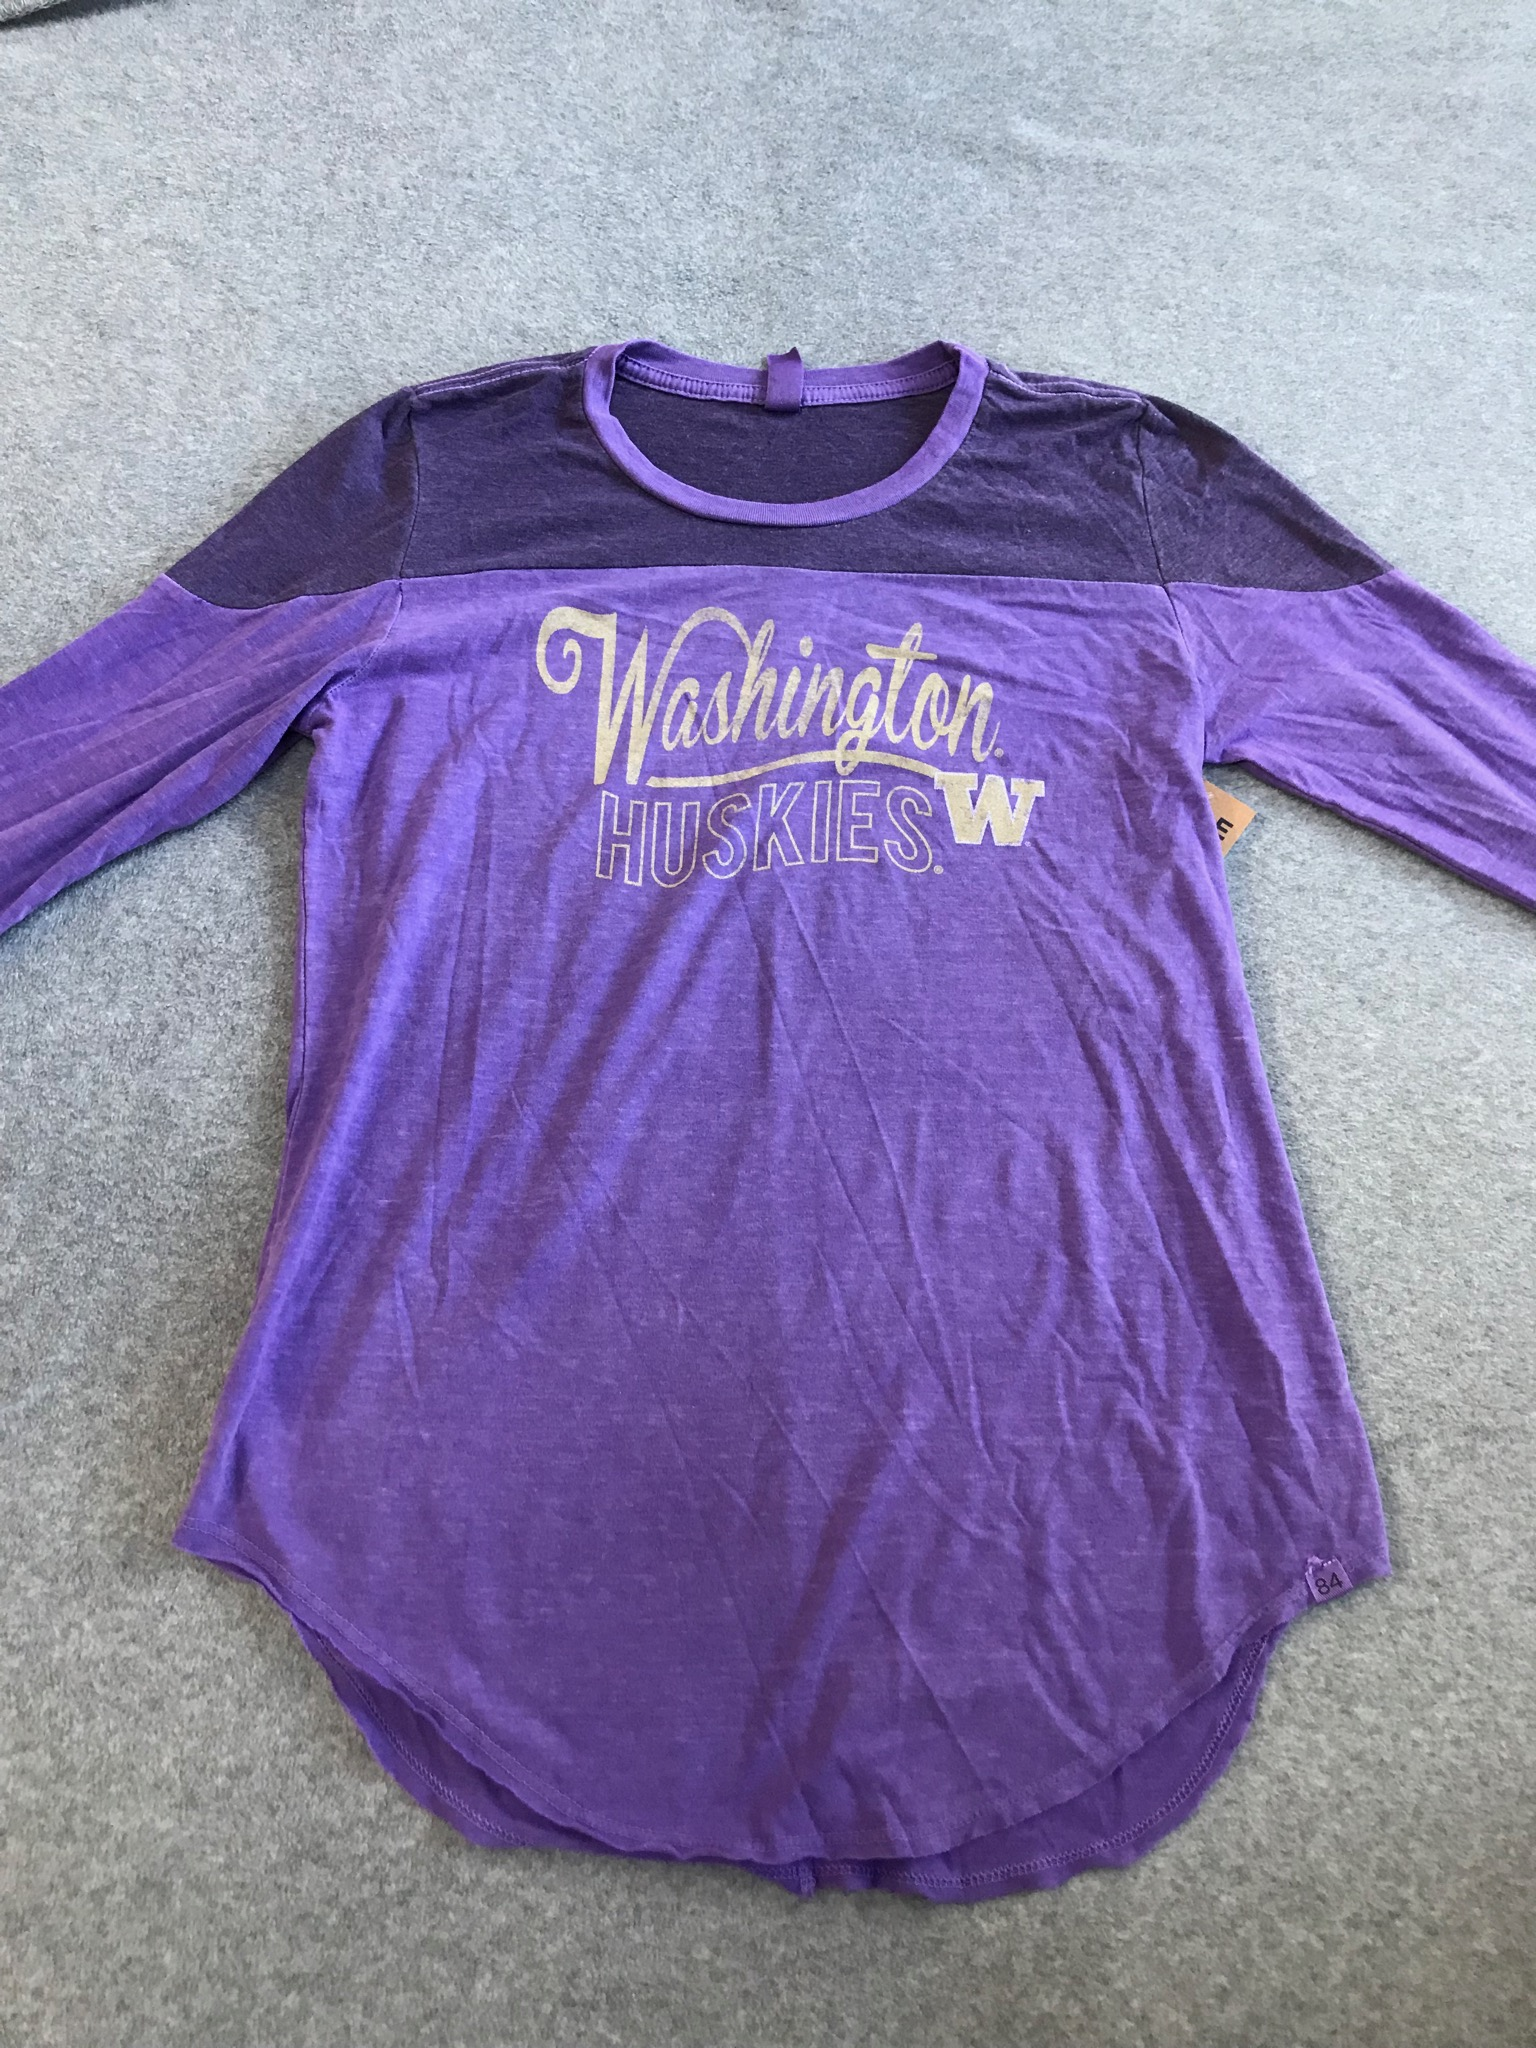 University of Washington Ladies Long Sleeve Tee size Medium NWT